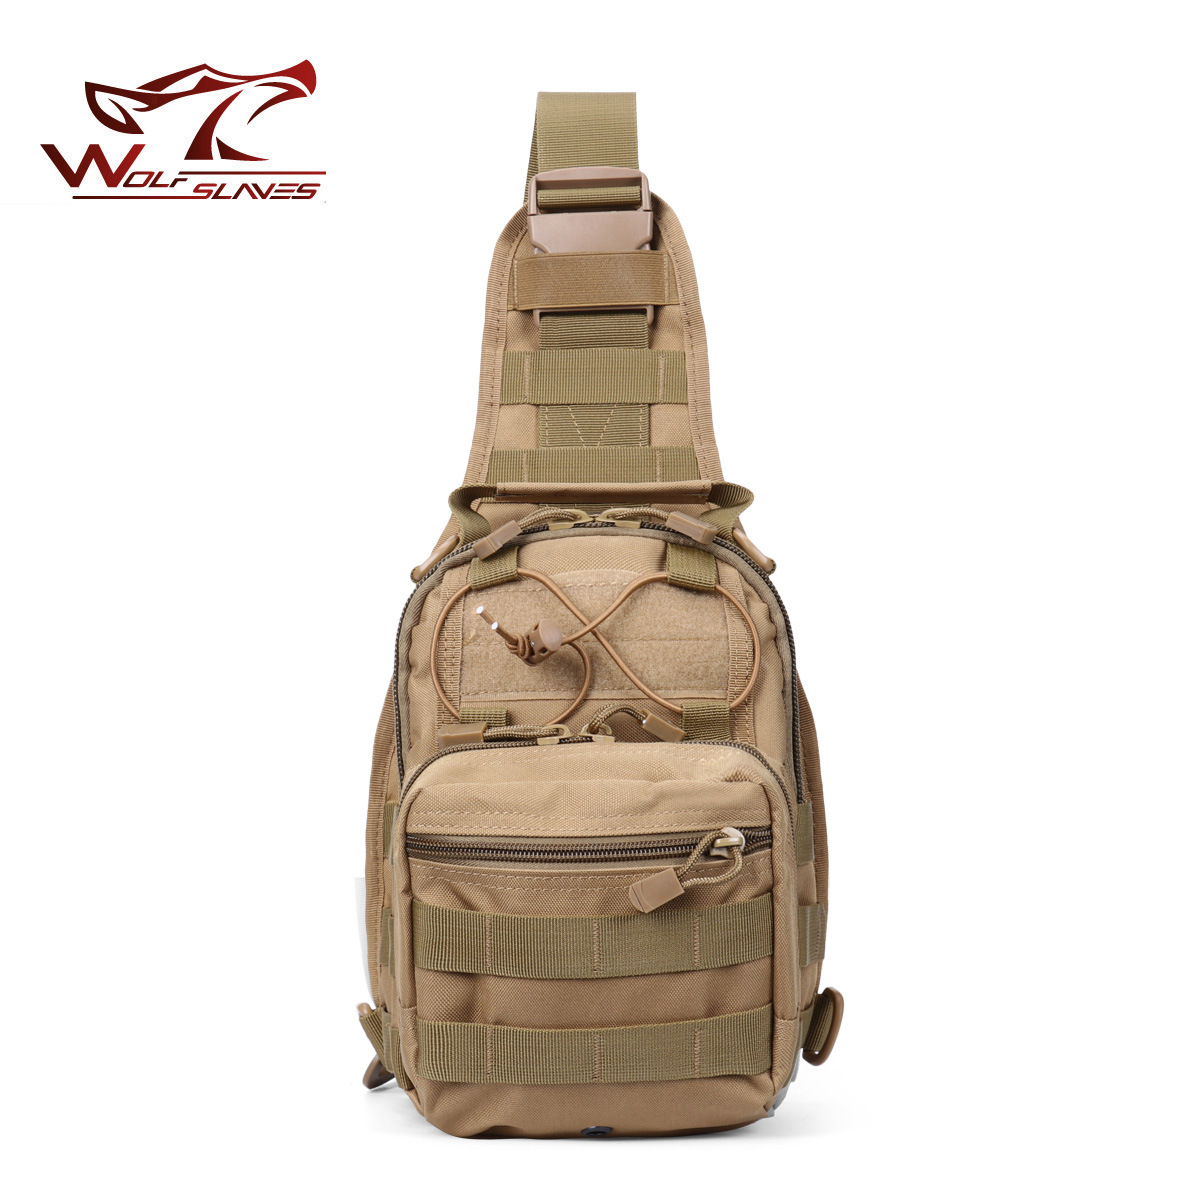 Outdoor Molle Camouflage Tactical Chest Bag Crossbody Bag Men And Women Army Fans Camouflage Outdoor Sports Hiking Bag